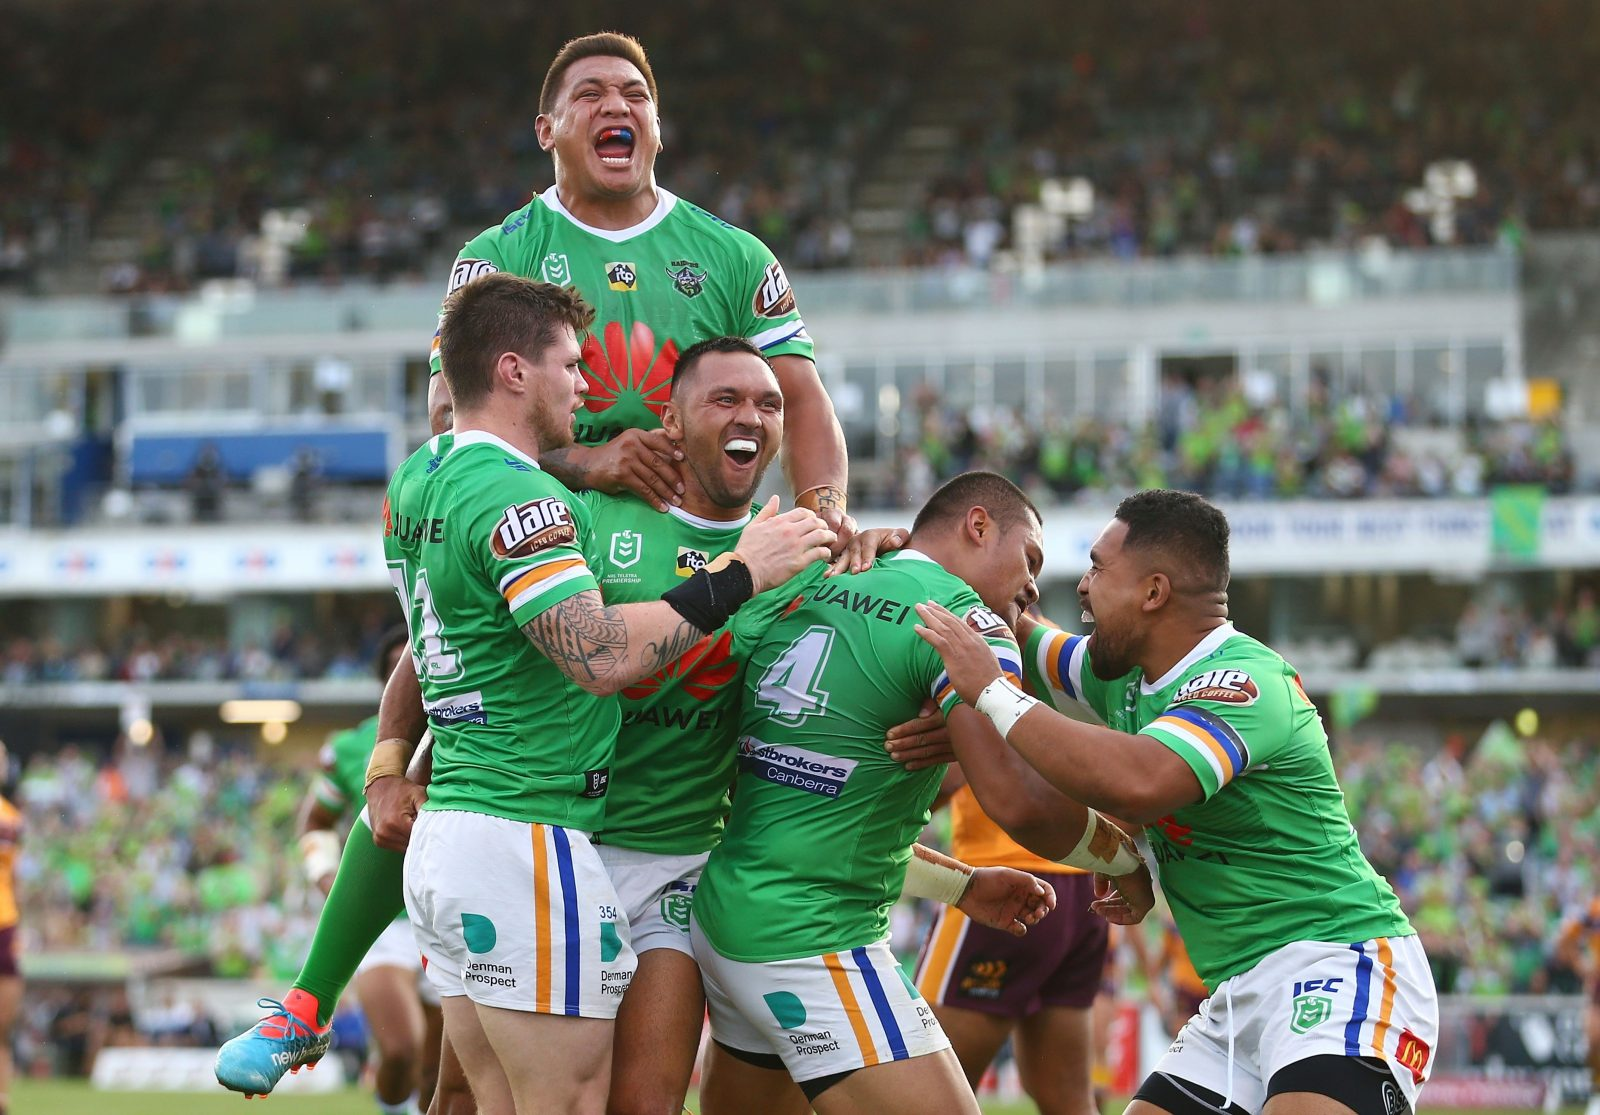 Canberra Raiders players celebrate a try